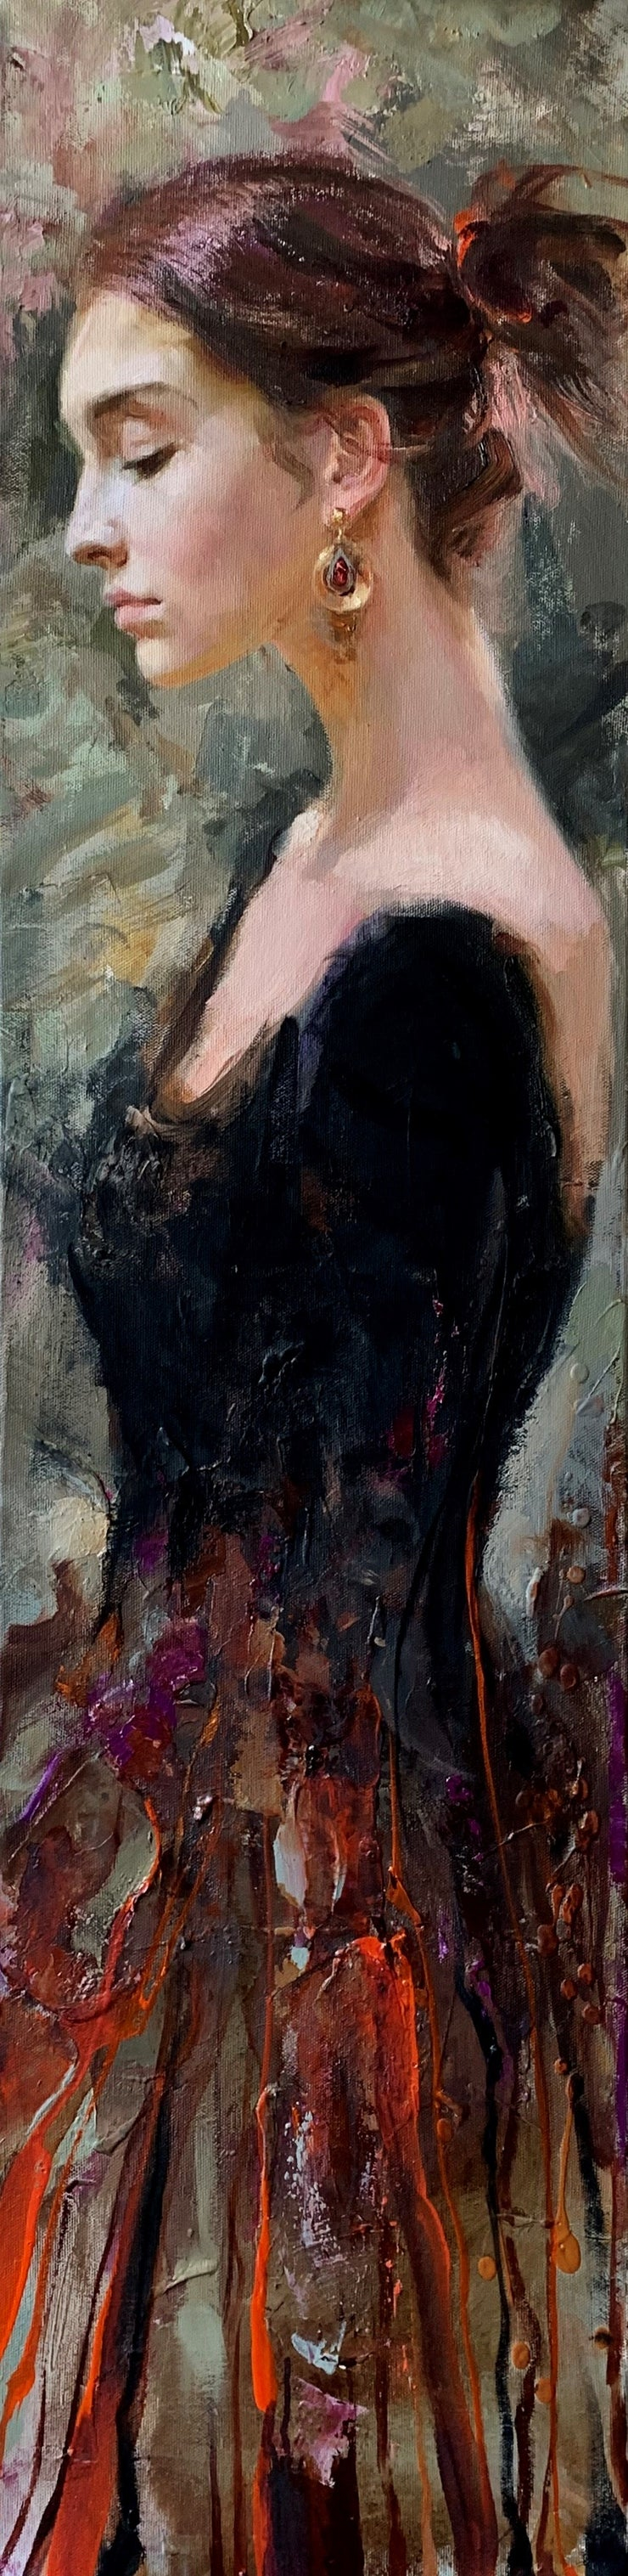 Catalina - Gamma Series by Irene Sheri.   Romantic Impressionist - Catalina's side profile. Her hair pulled back, she wearing a black top with a orange red and brown mixed of colors.